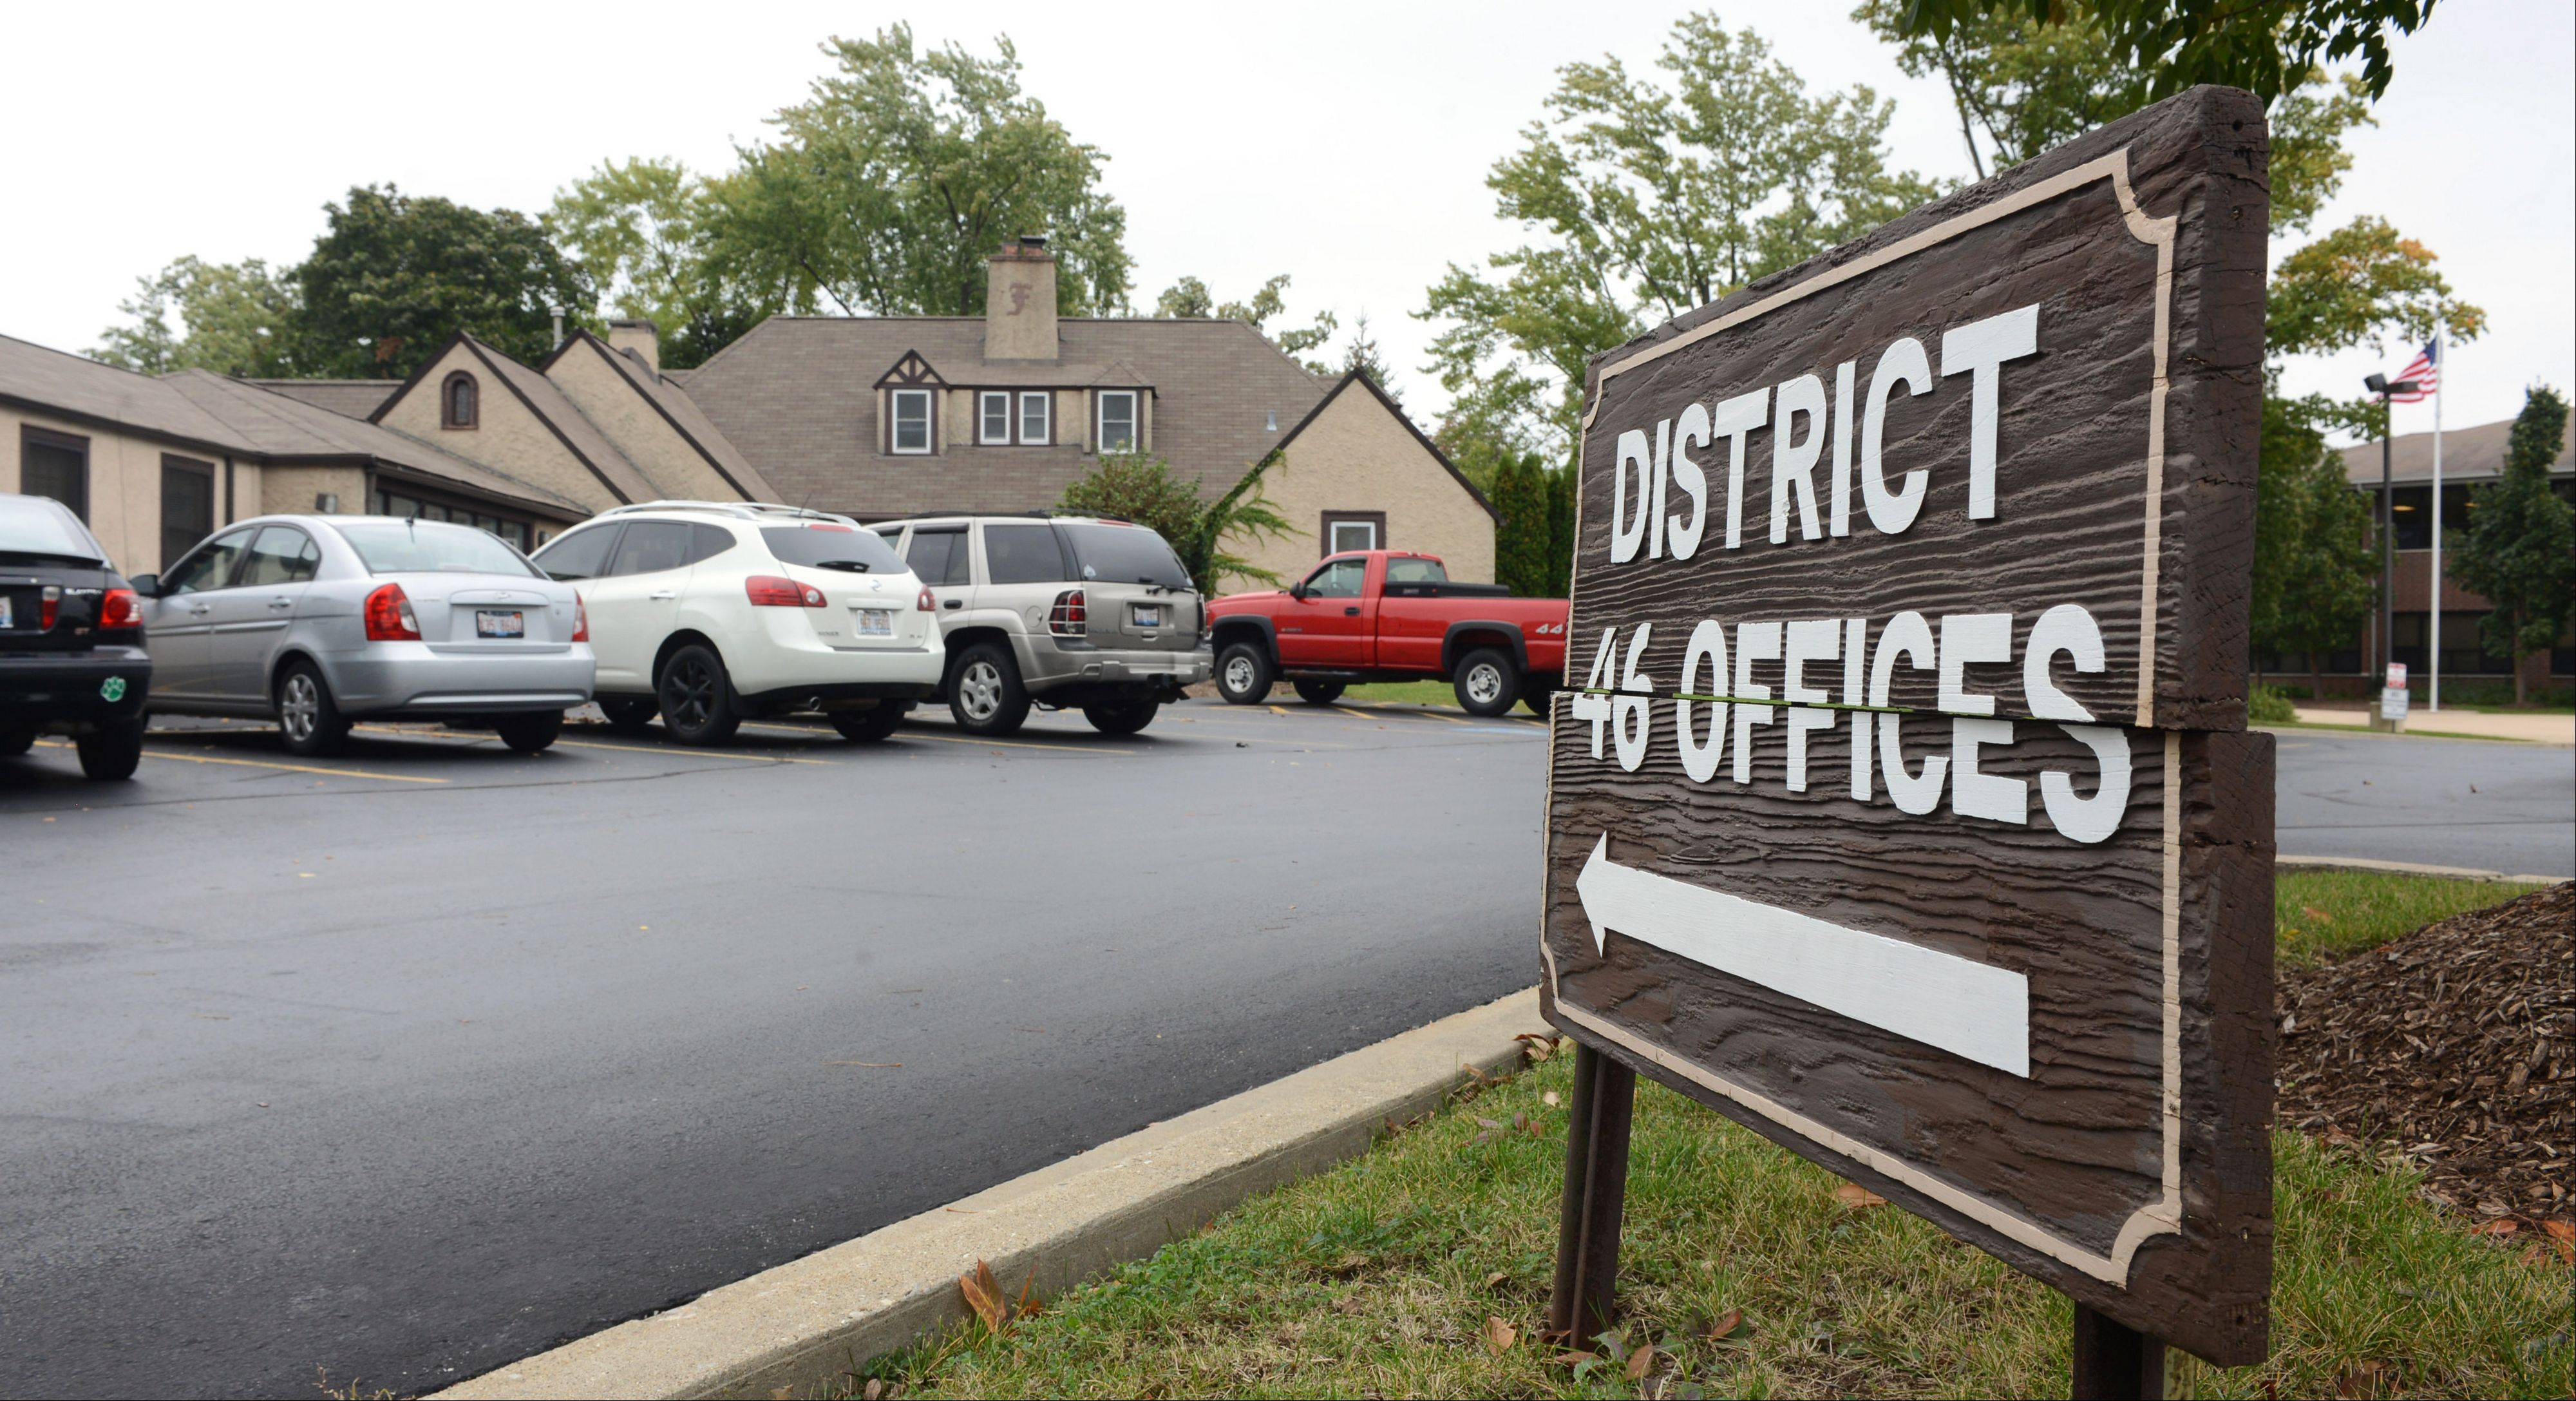 The annual school board and administrators conference in Chicago next month is already costing Grayslake Elementary District 46 taxpayers $2,300 more than last year.